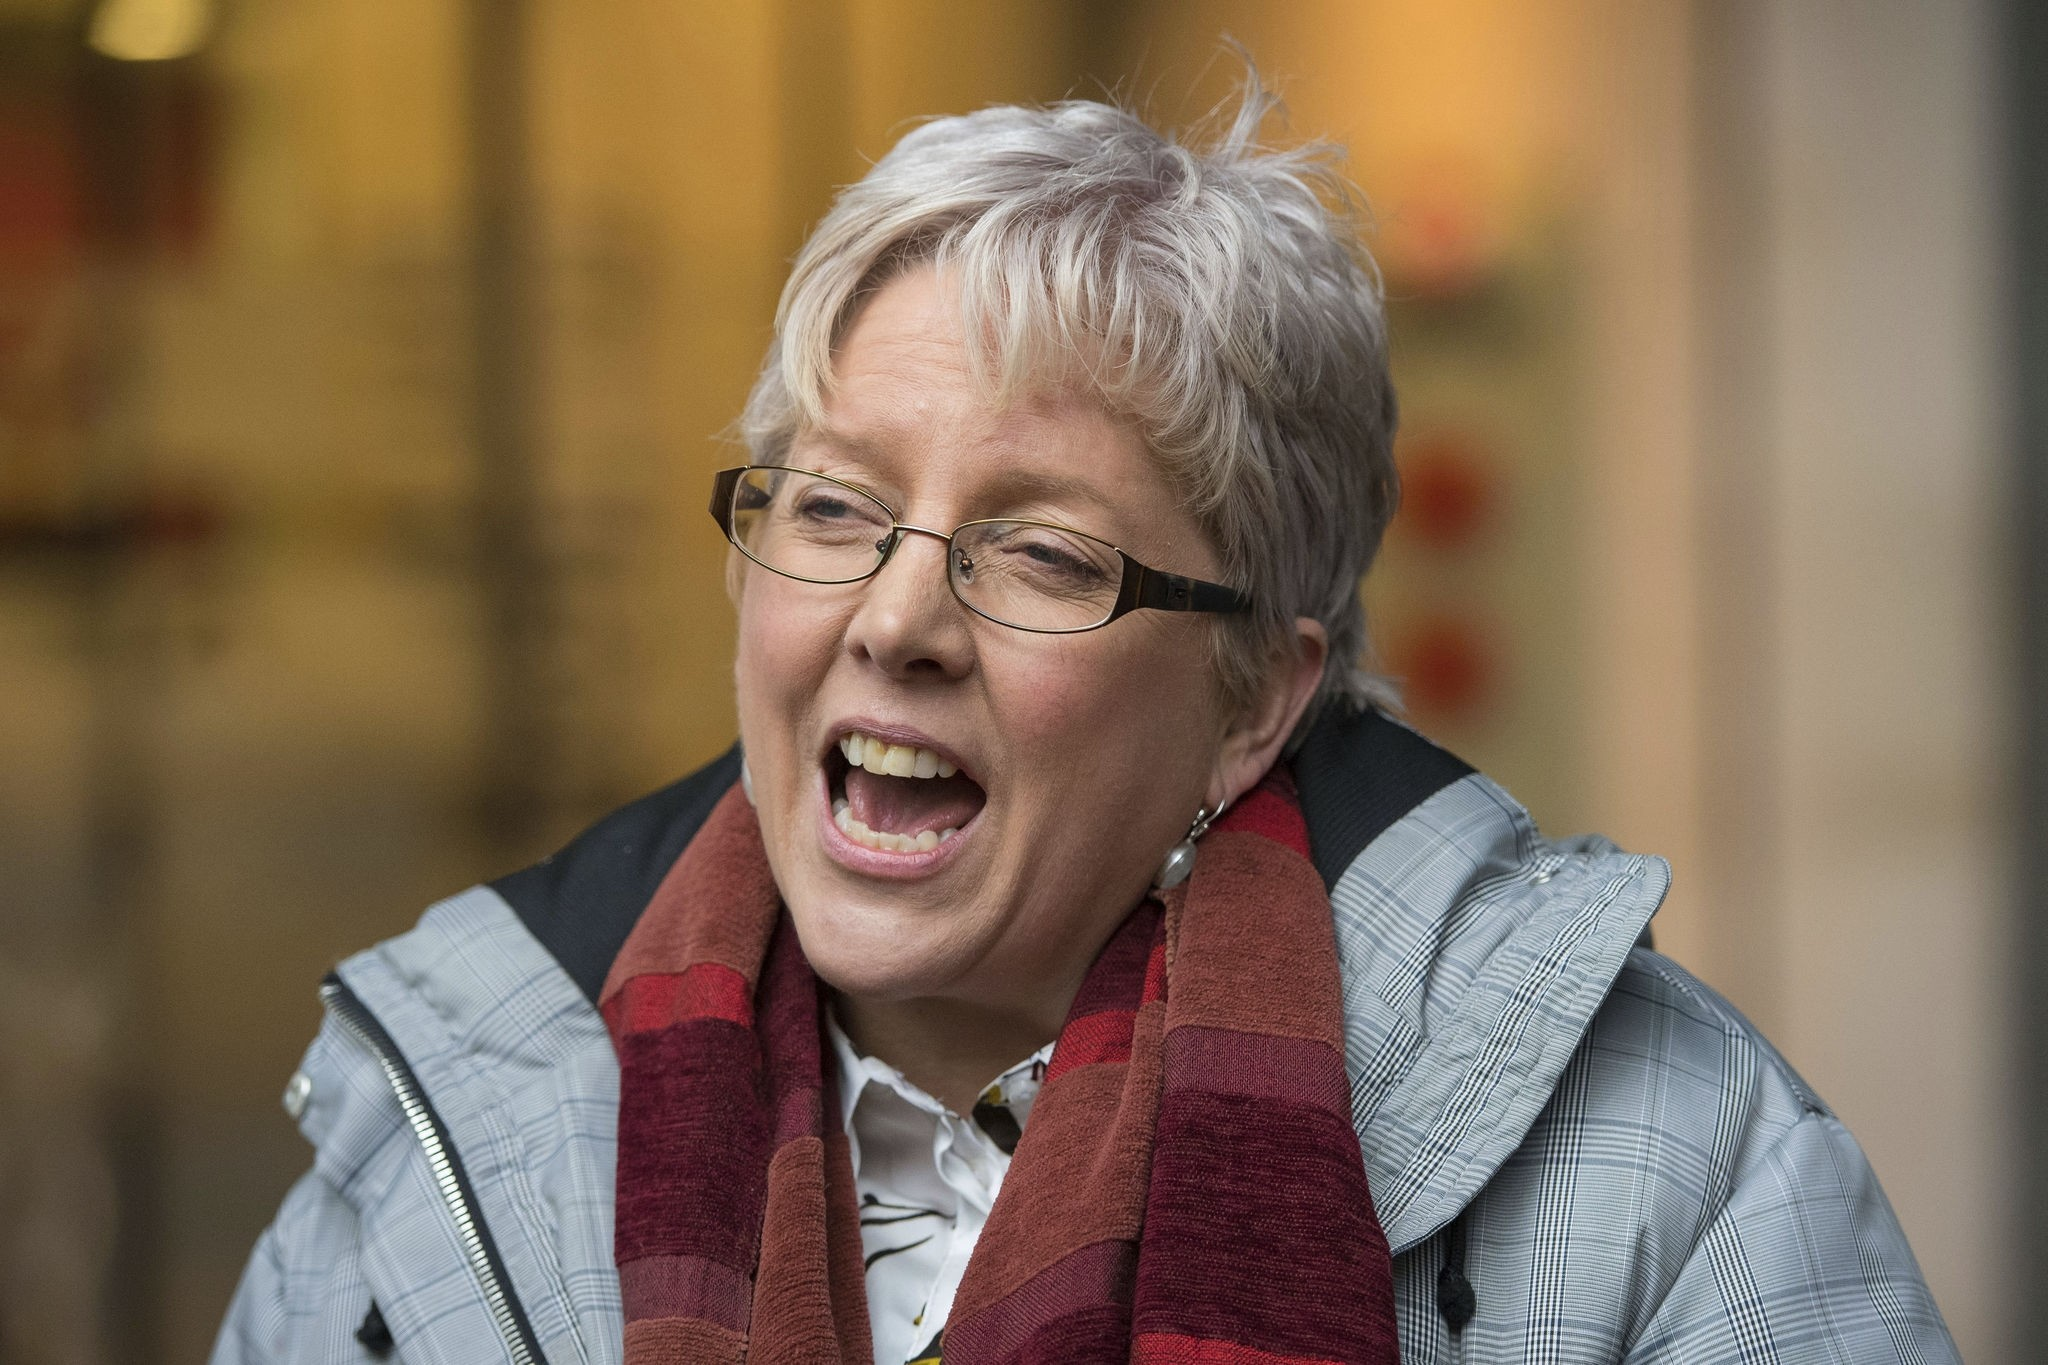 BBC's China editor Carrie Gracie speaks to the media outside BBC Broadcasting House in London, Monday Jan. 8, 2018. (PA via AP)